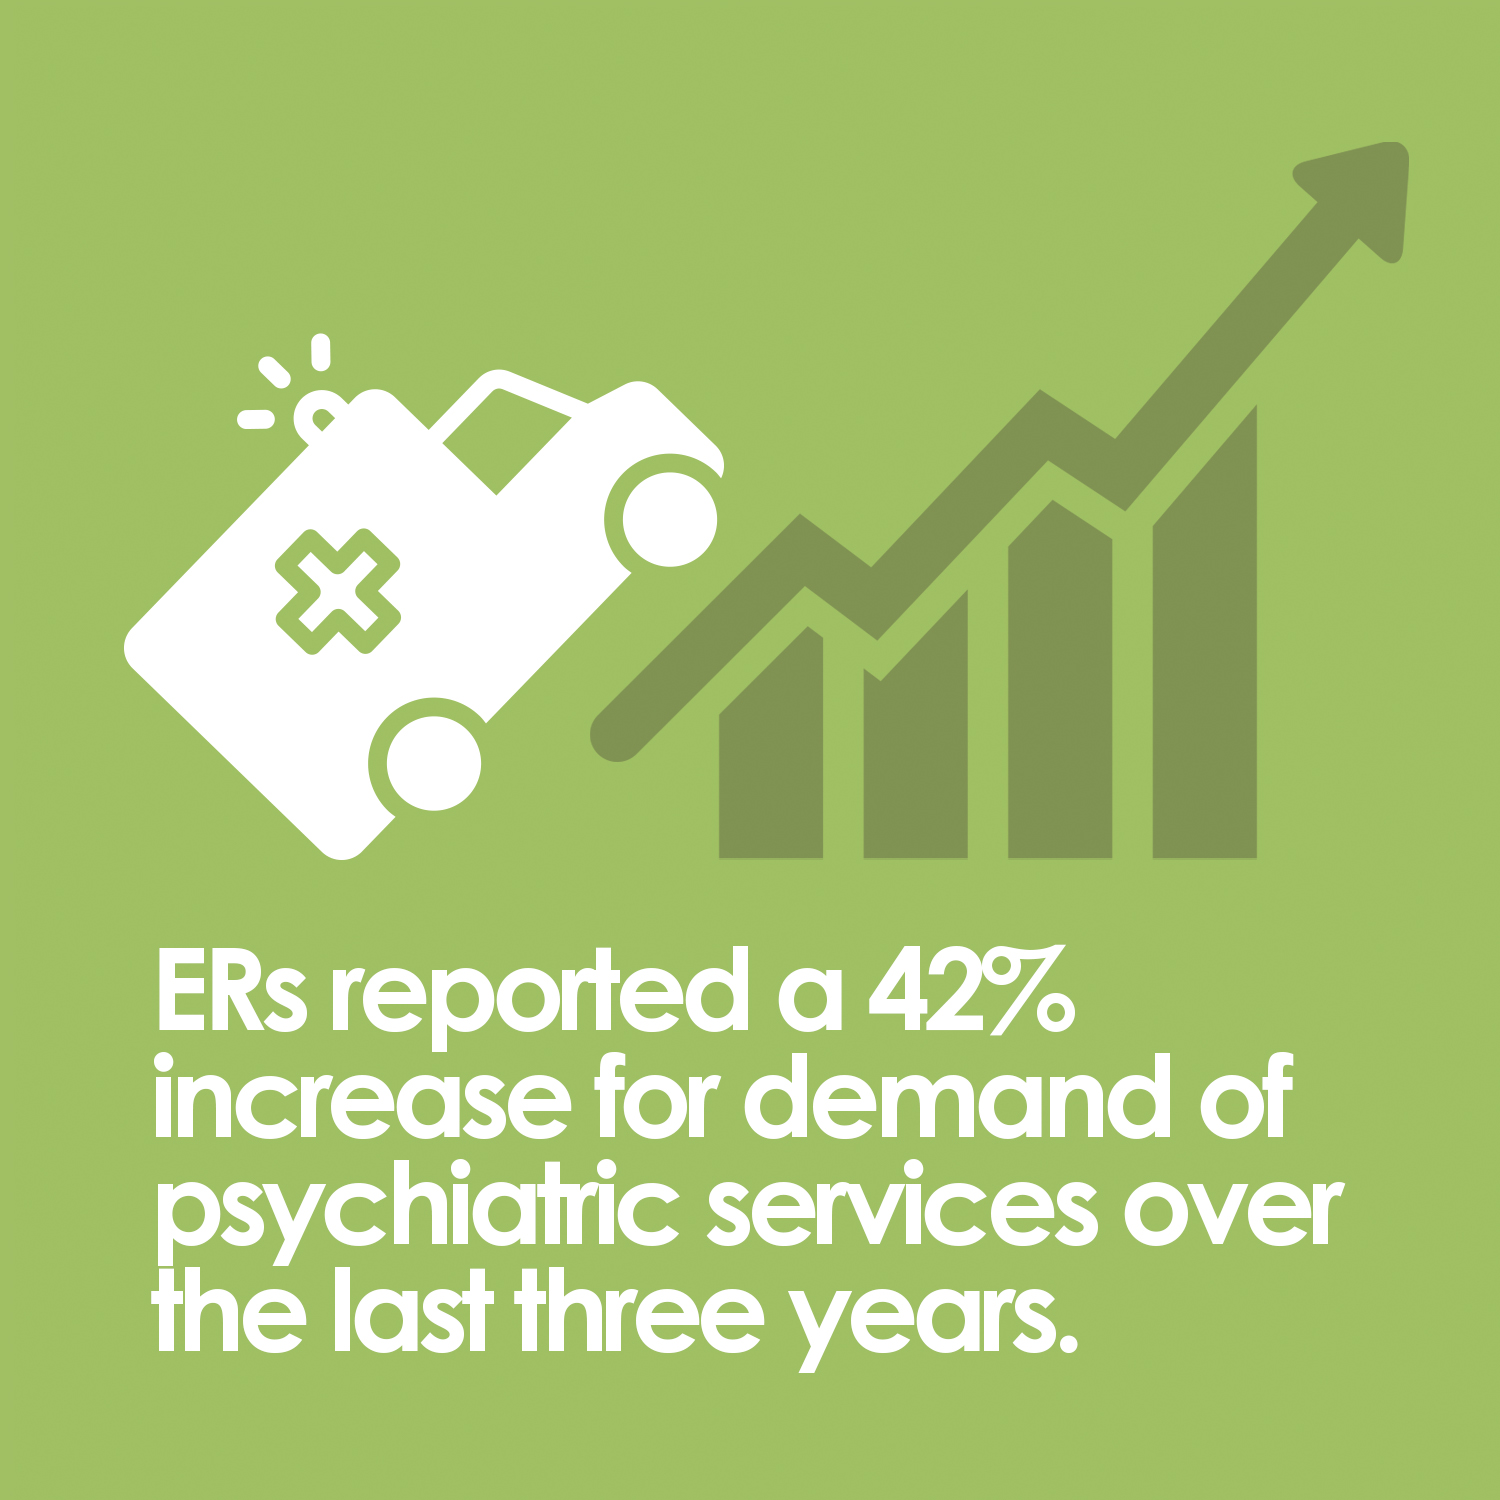 ERs reported a 42% increase for demand of psychiatric services over the last 3 years